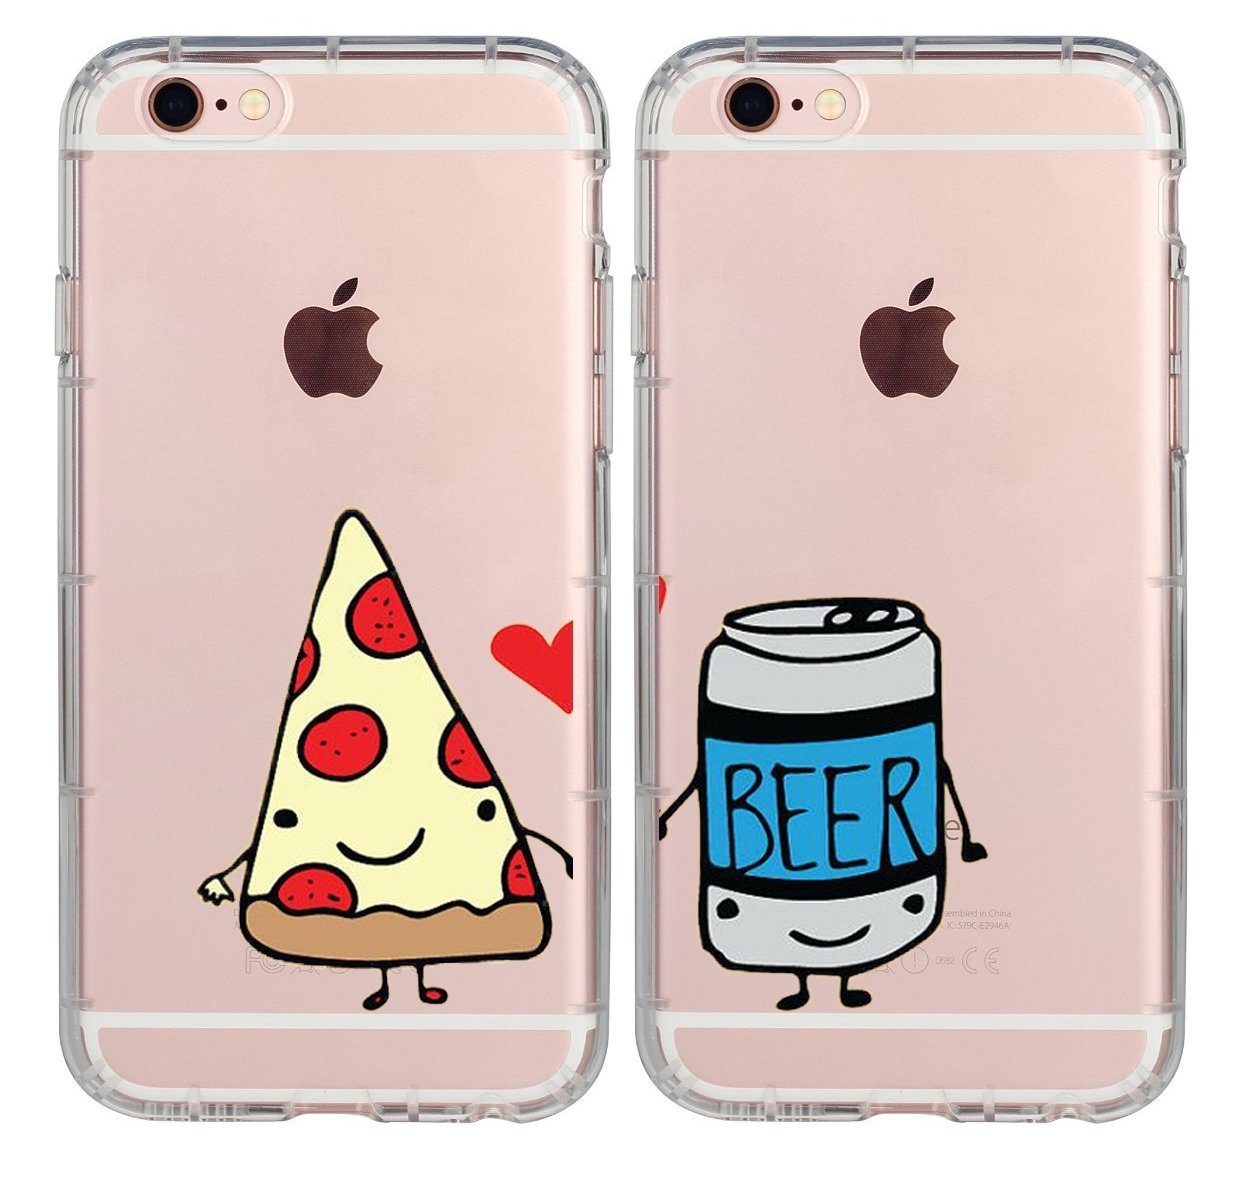 brand new 69dc1 c30eb iPhone 7 Case for Her,iPhone 8 Case,Cute Best Friends Things for Girls  Boys,FriendShip Pizza & Beer Princess & Prince Bff Matching Funny Love  Sisters ...